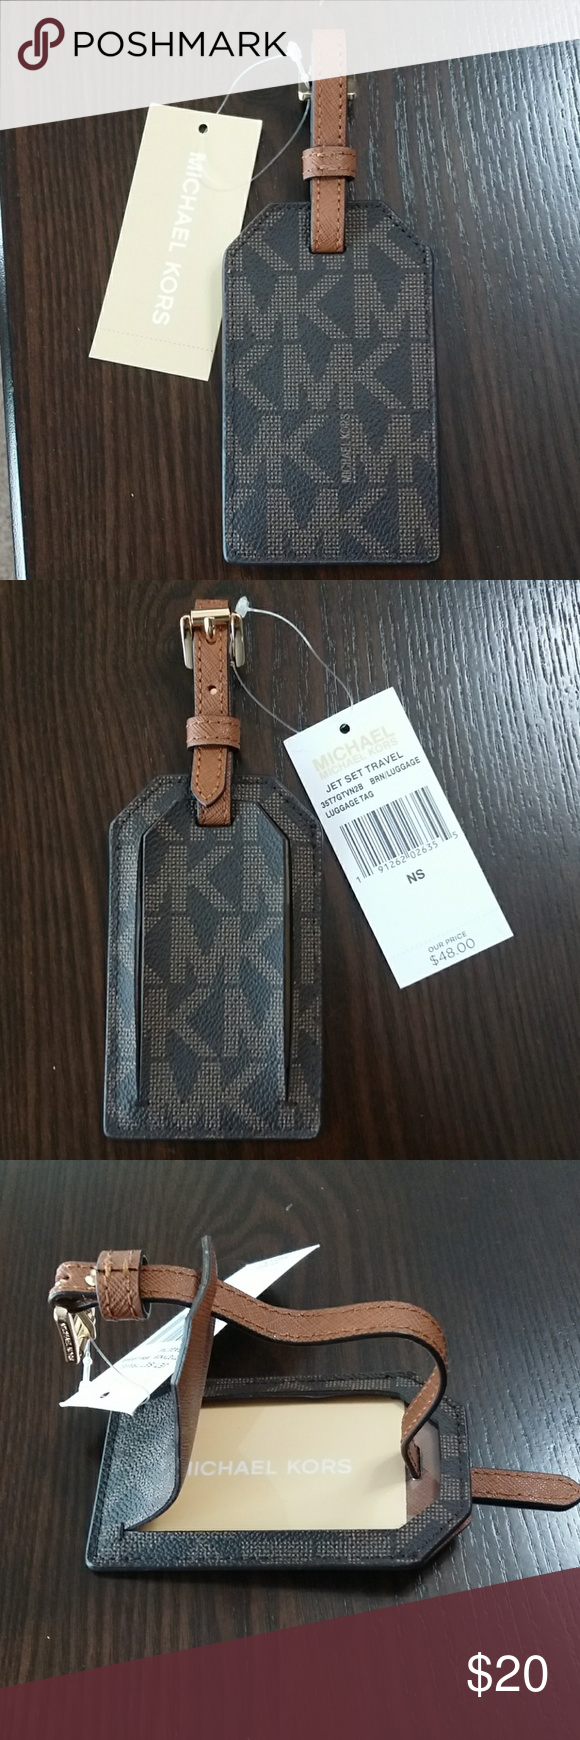 457a7963a32e Michael Kors Luggage Tag Jet Set Travel Brown Authentic New With Tags  luggage tags